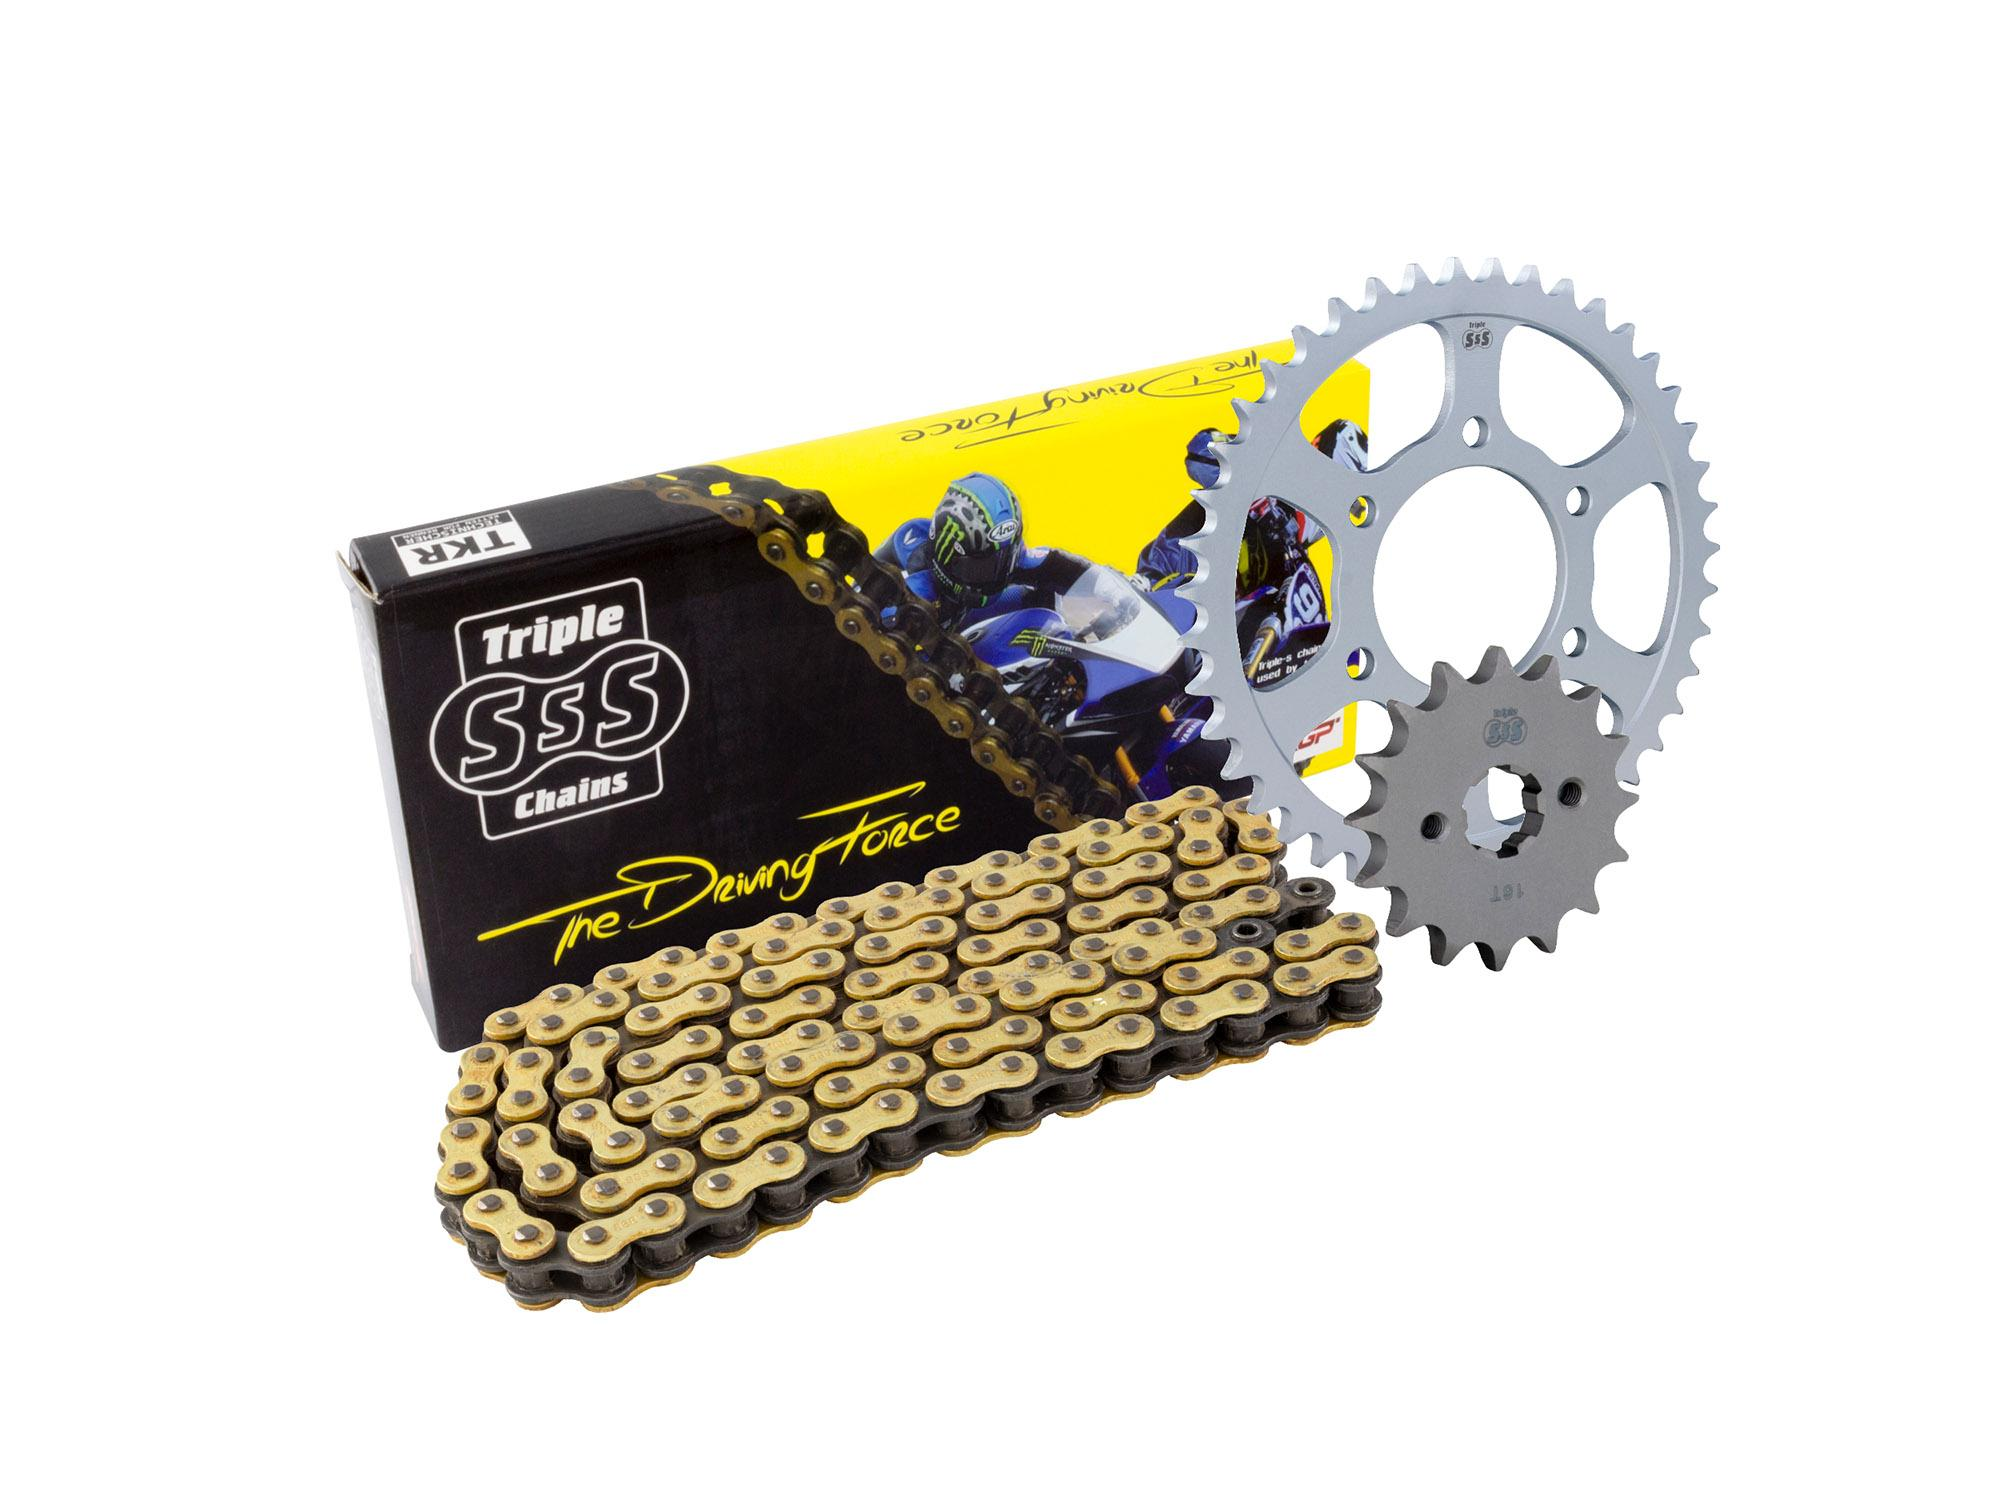 BMW F800 GS Adventure 13-16 Chain & Sprocket Kit: 17T Front, 42T Rear, HD O-Ring Gold Chain 525H 116Link